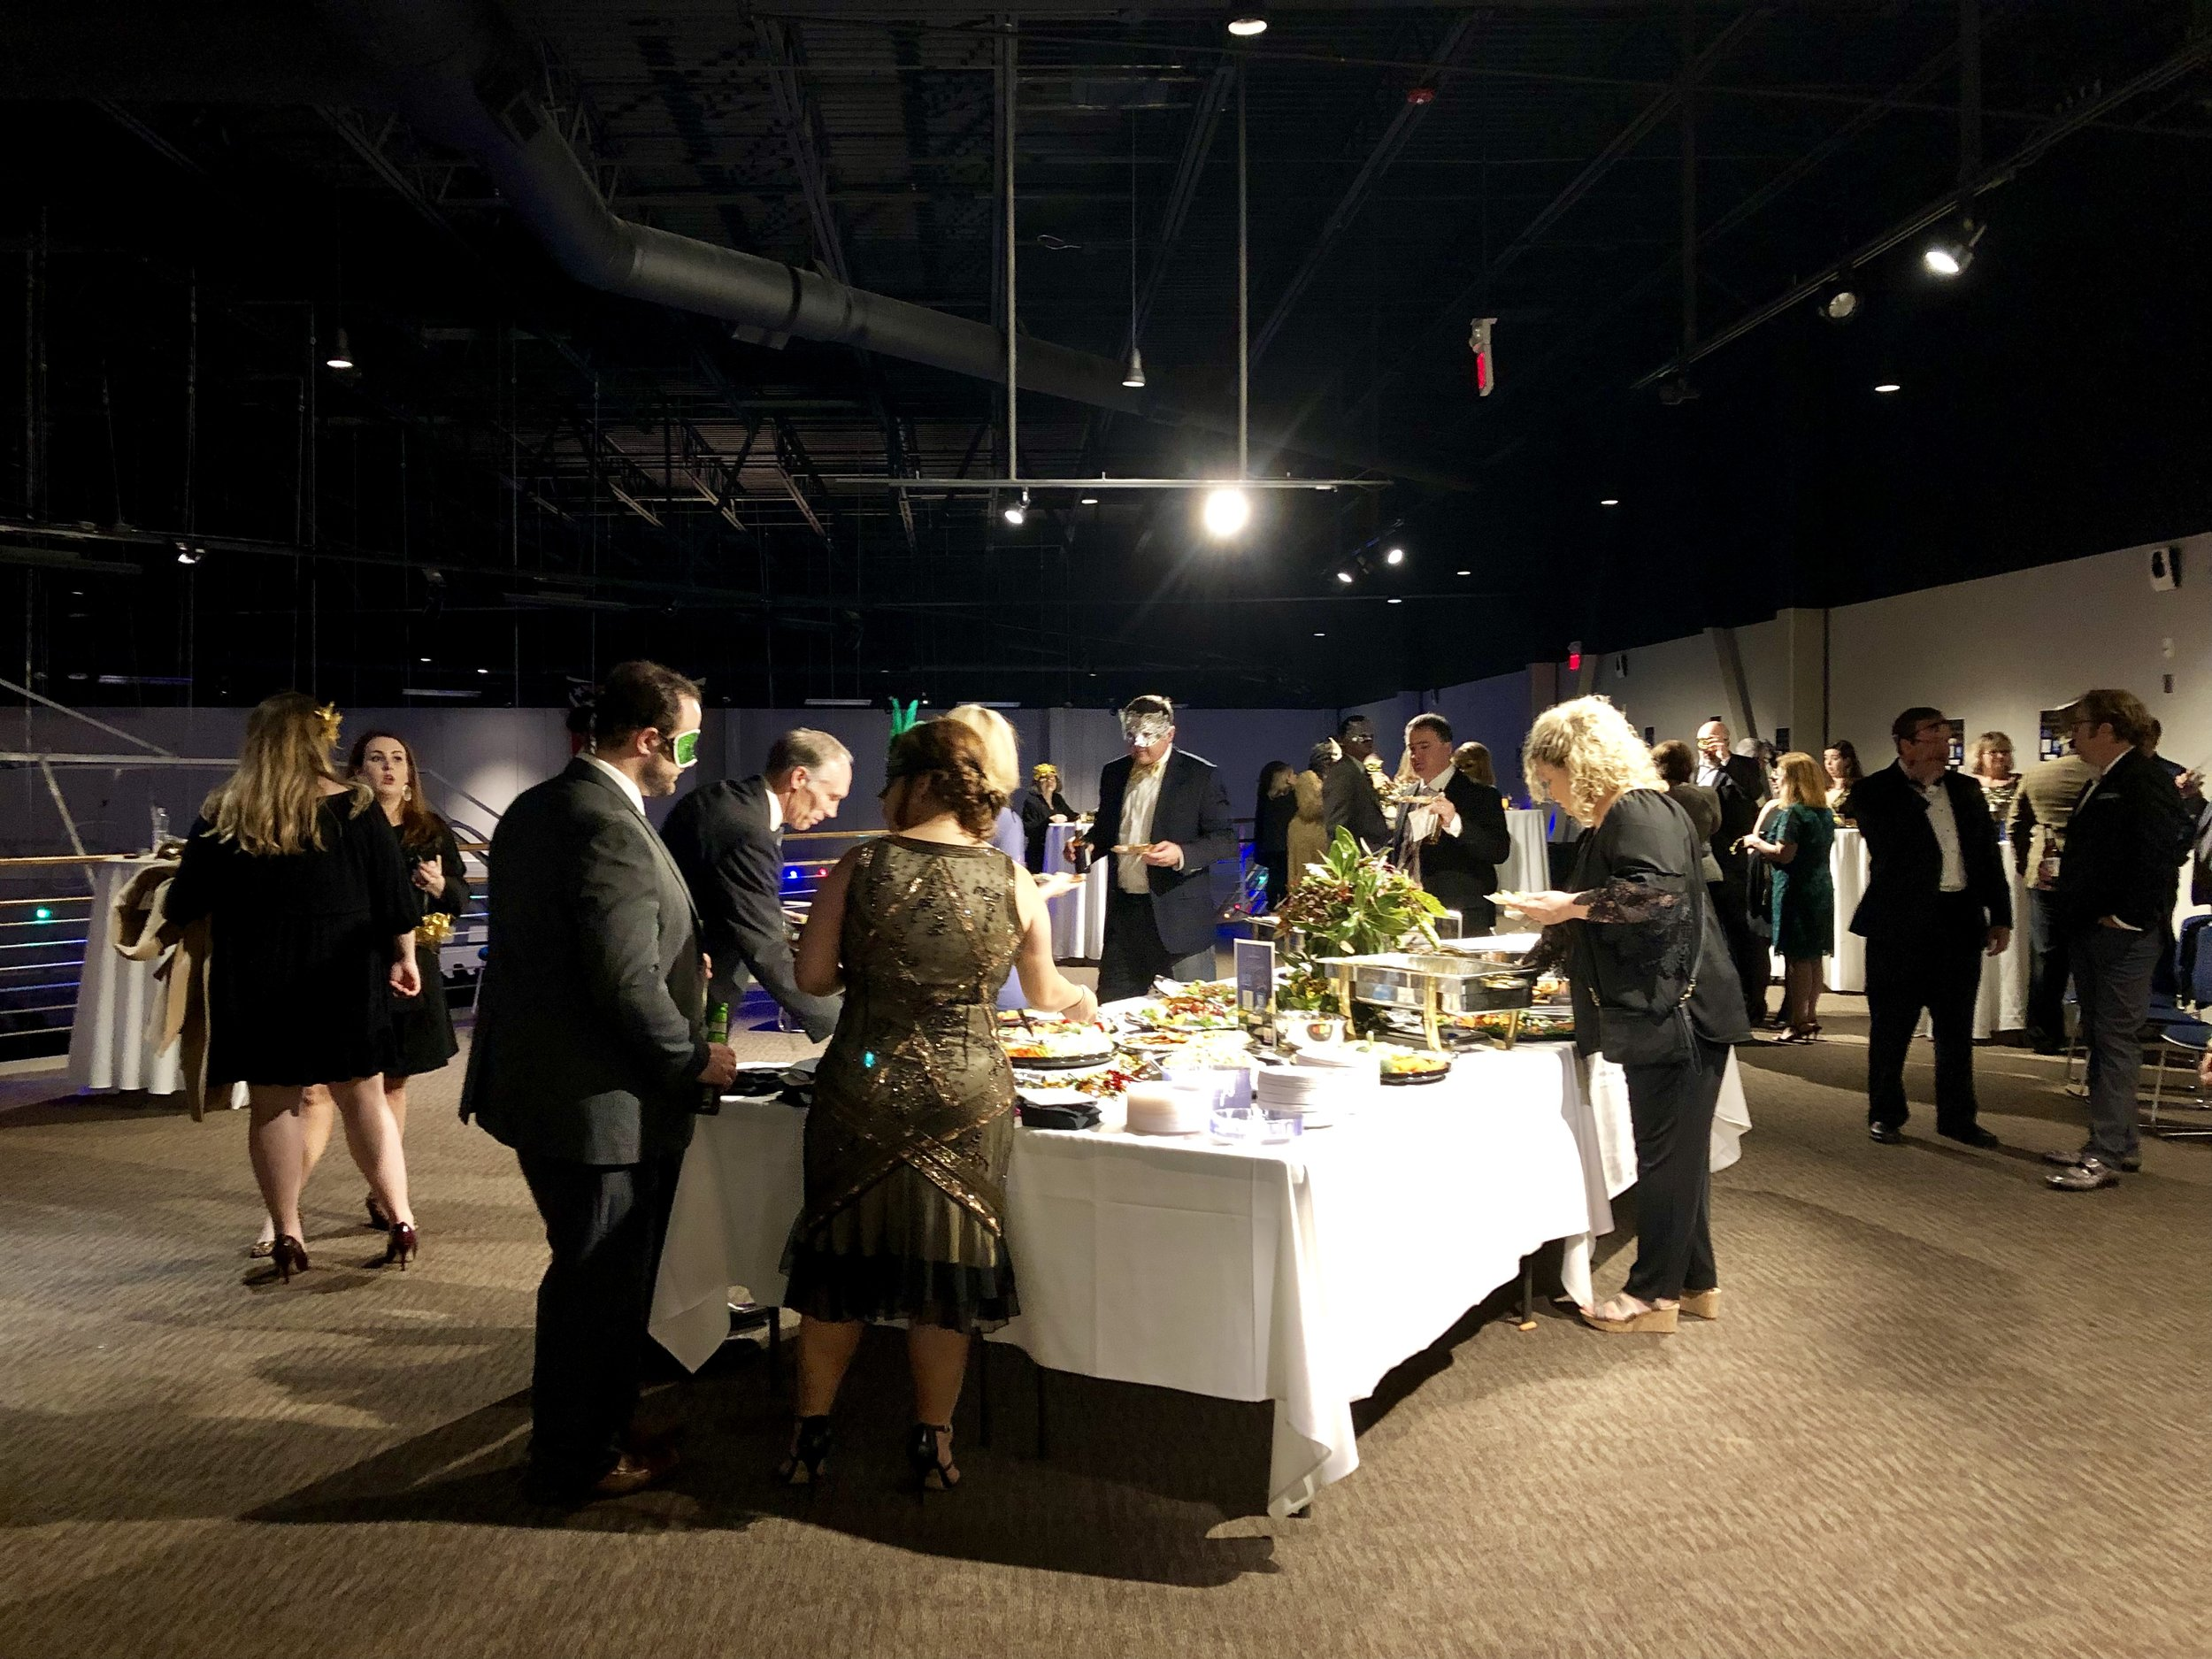 Guests select hors d'oeuvres at the NYE Masquerade.  Photo by Catherine Hardee/Neuse News